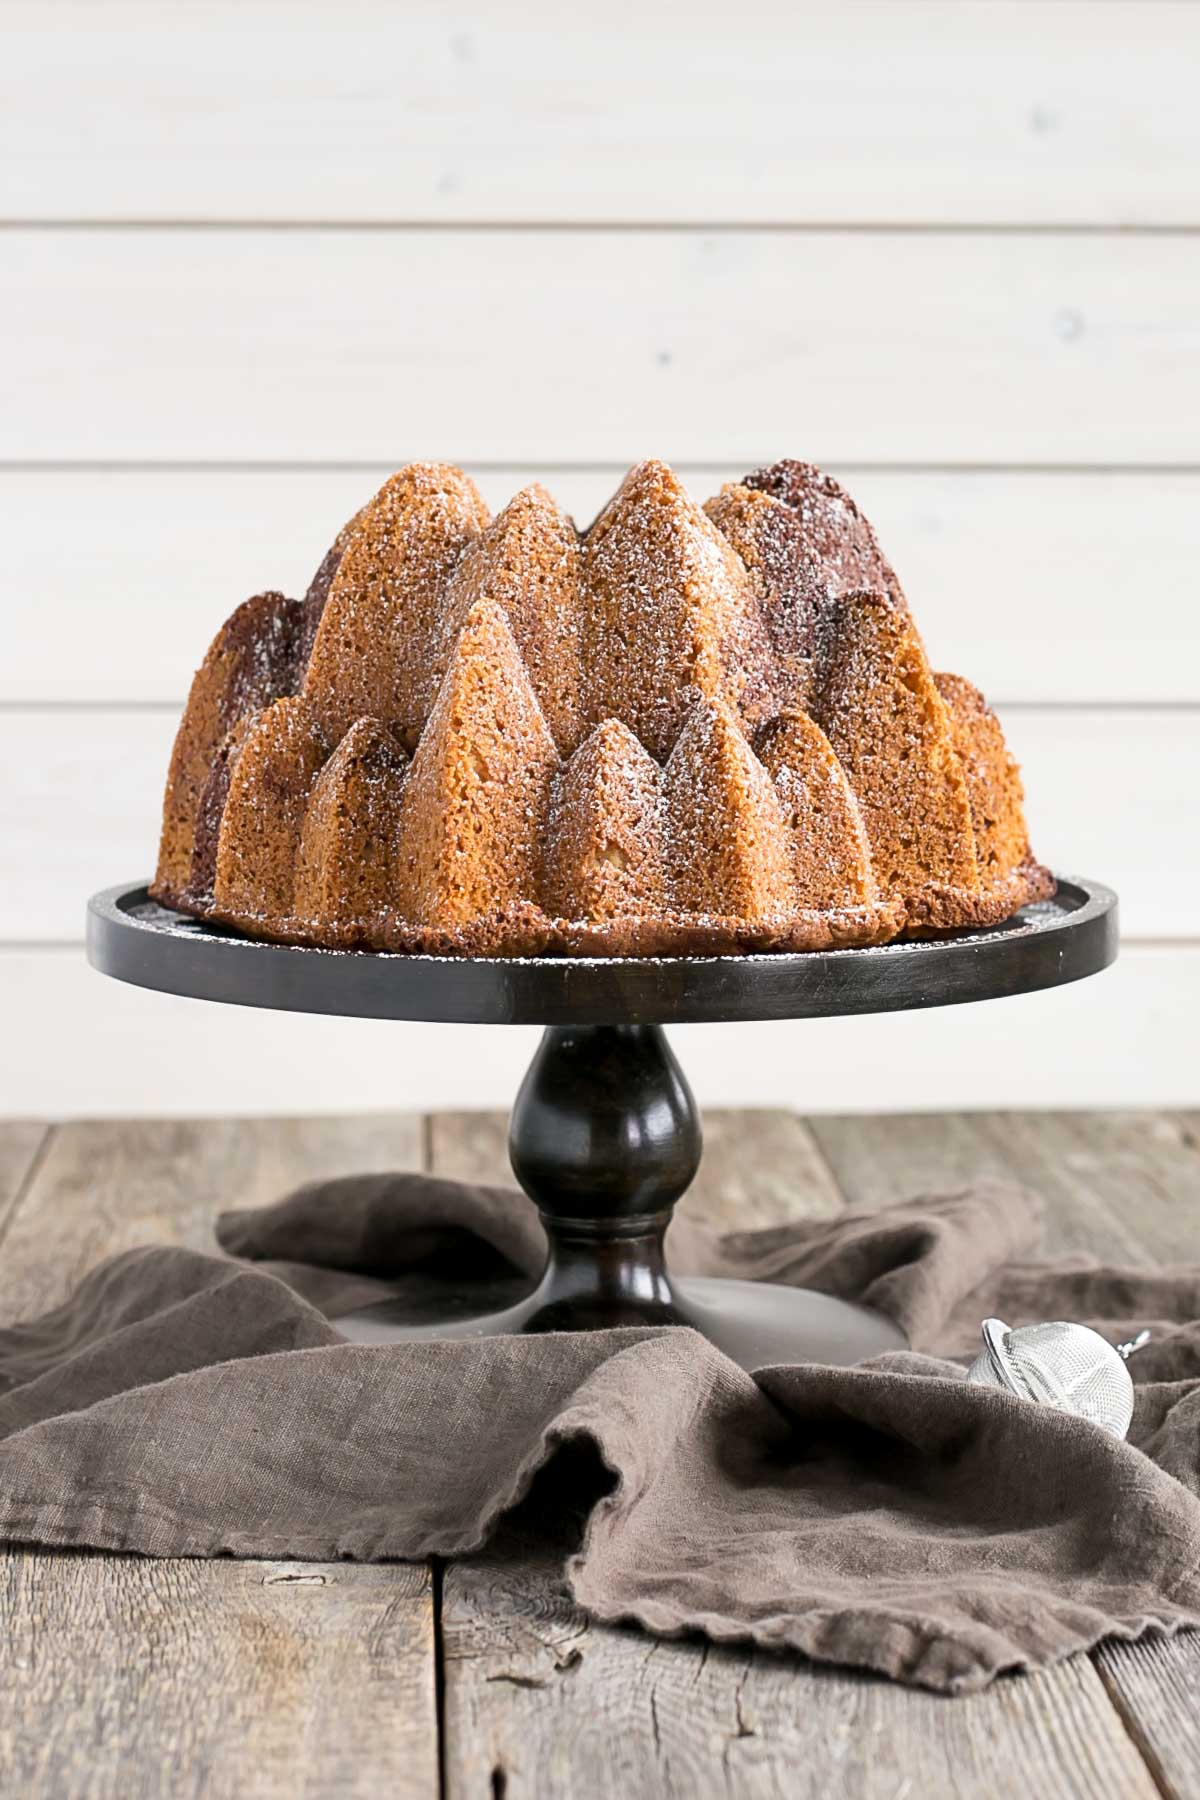 Bundt cake on a wooden cake stand.